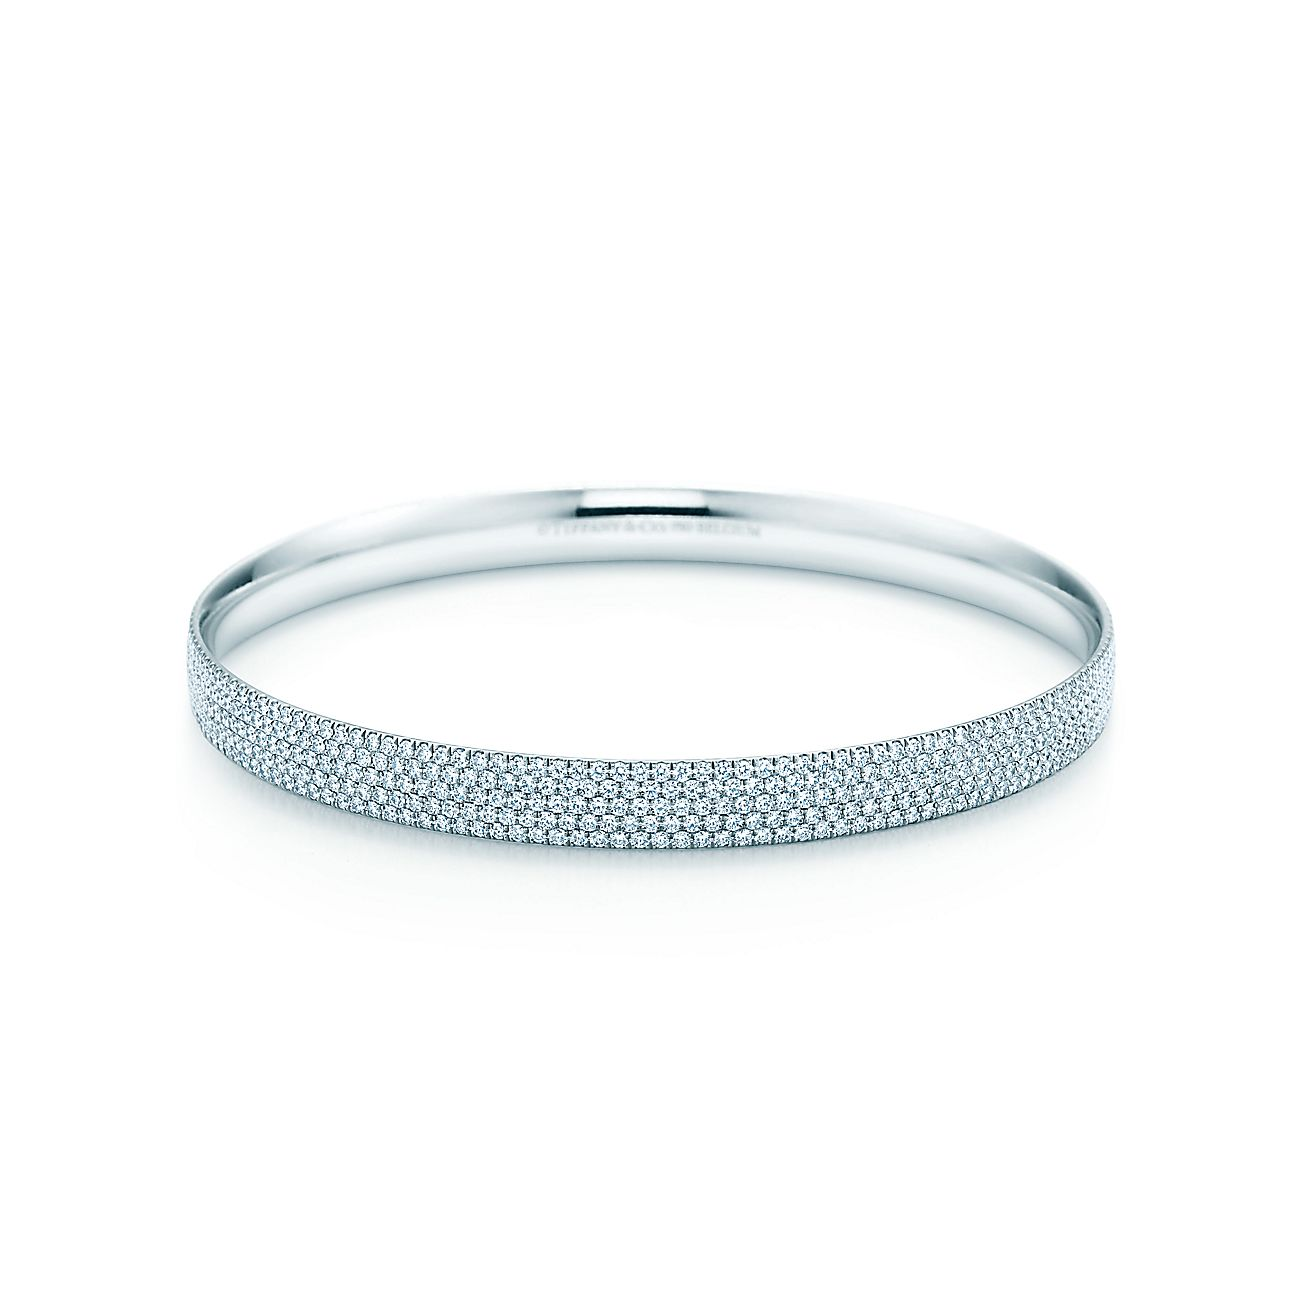 Tiffany Metro:Five-row Bangle